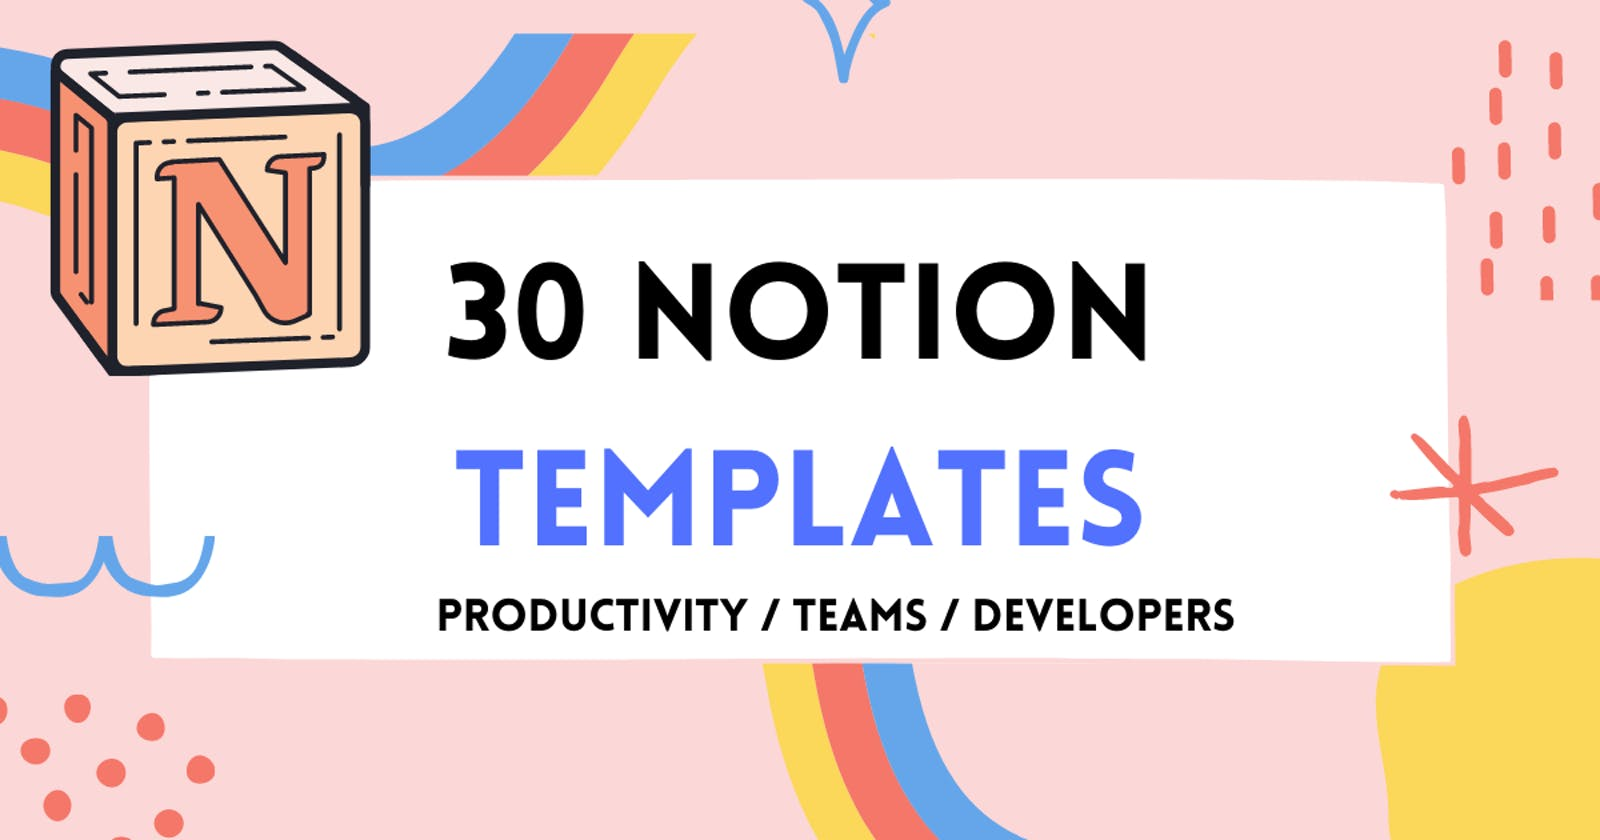 30 Notion templates for Remote Teams, Developers and Freelancers Productivity